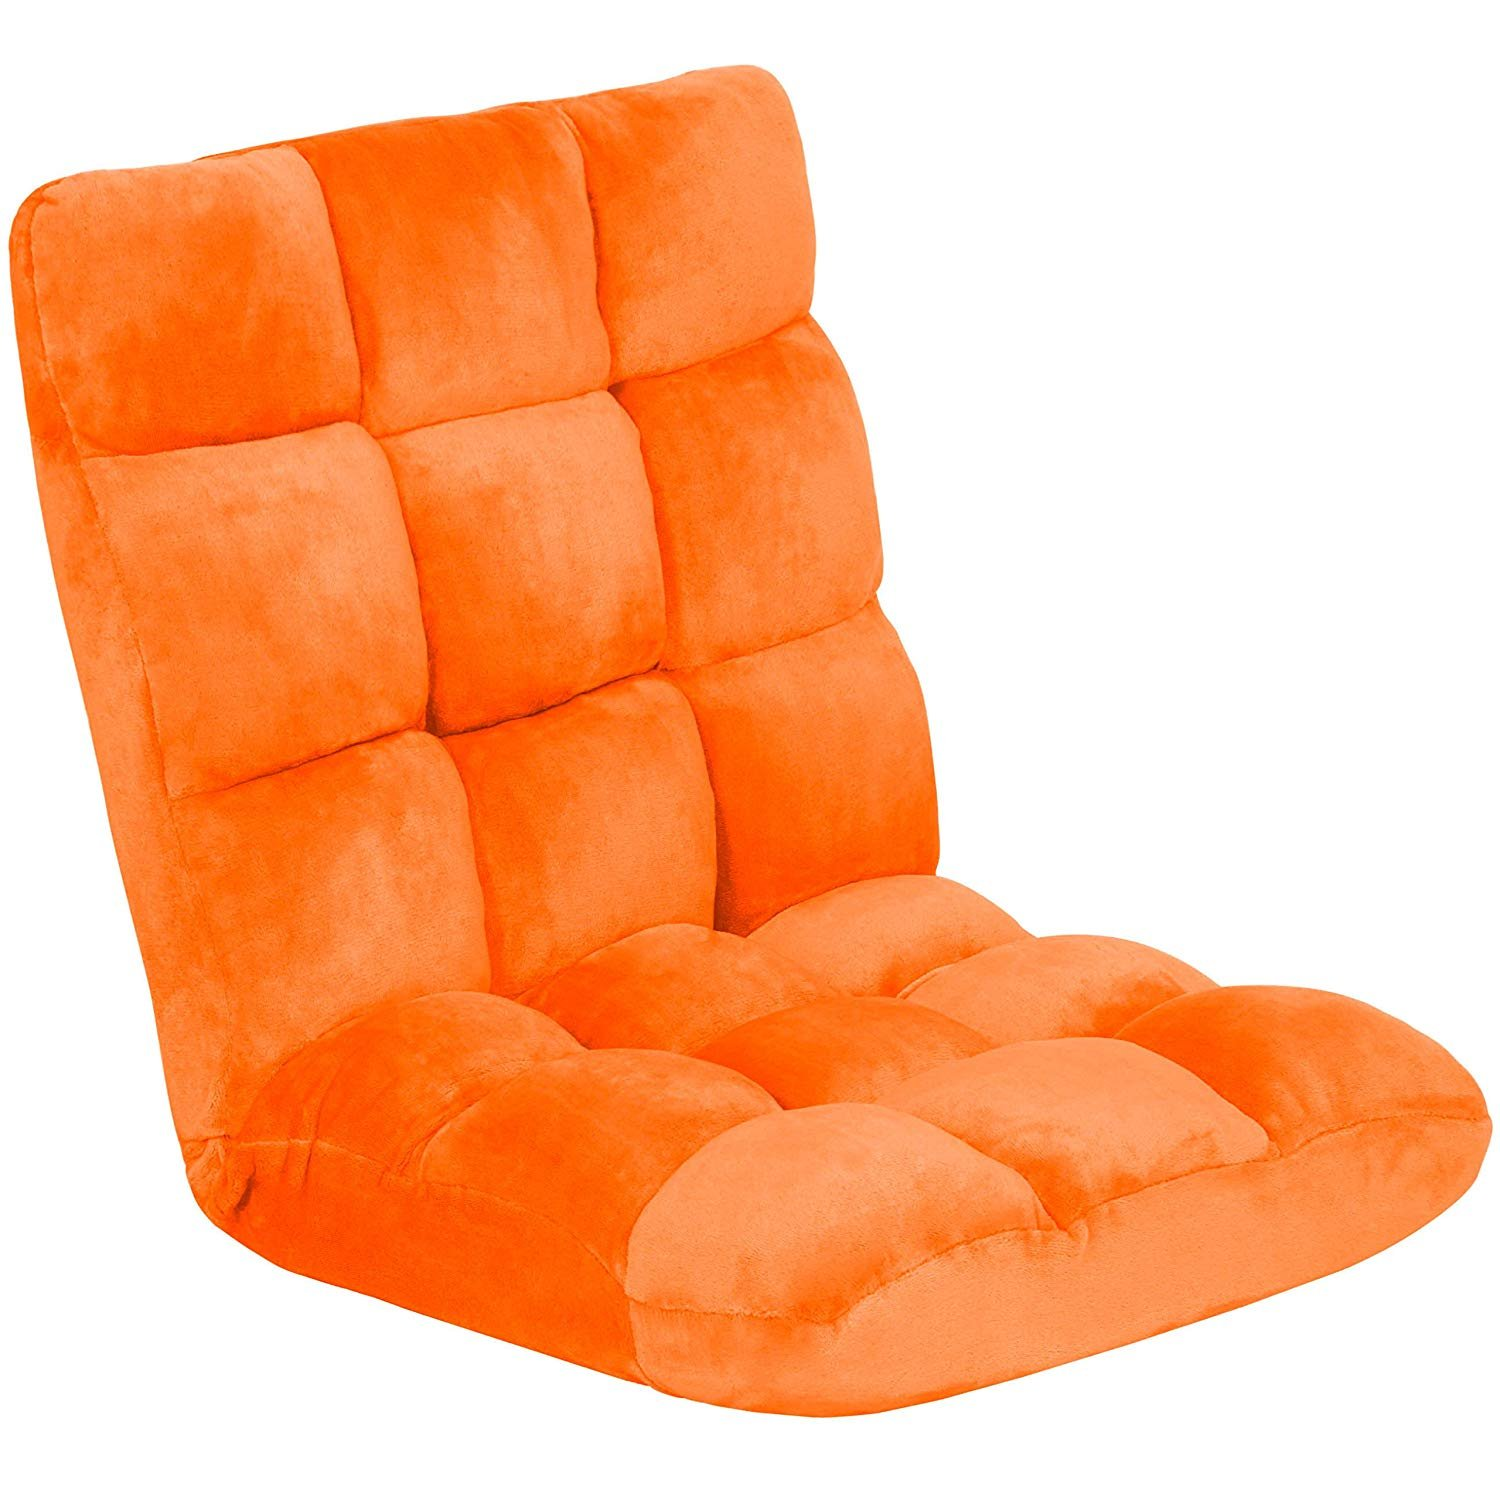 Folding Adjustable Memory Foam Cushioned Padded Gaming Floor Sofa Chair - Orange